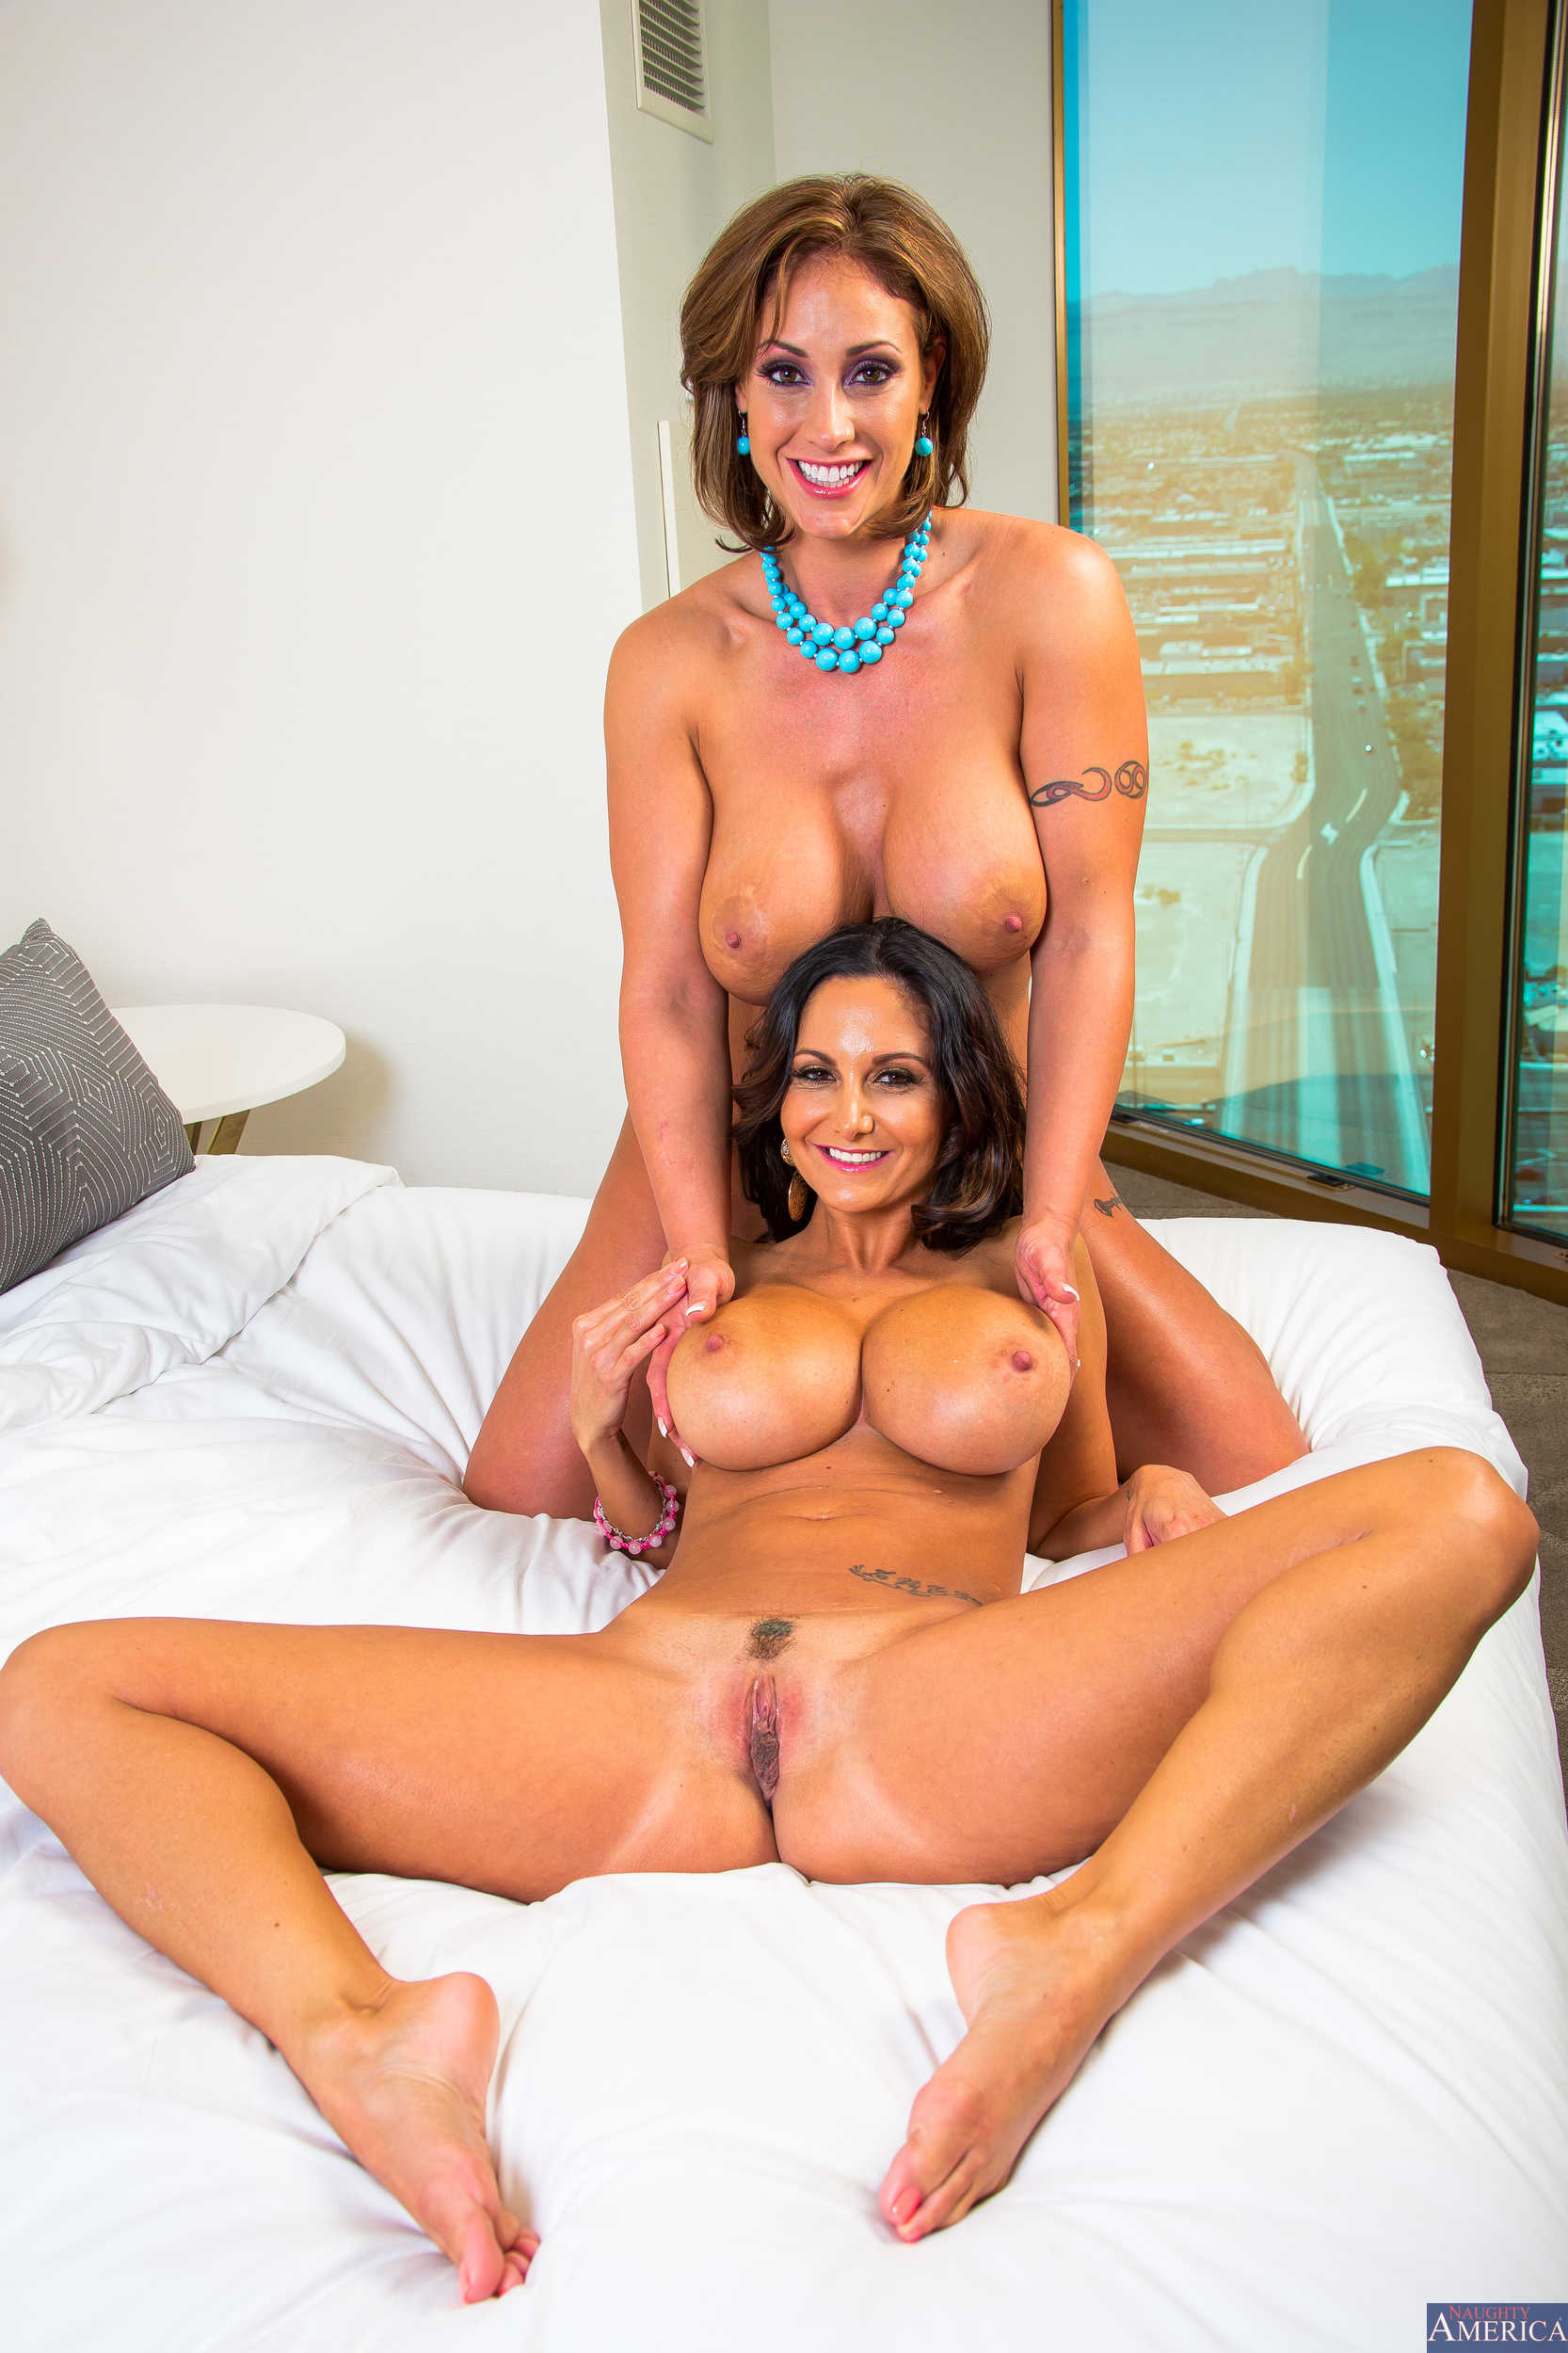 Busty babes kendra lust and lisa ann fuck in threesome 9